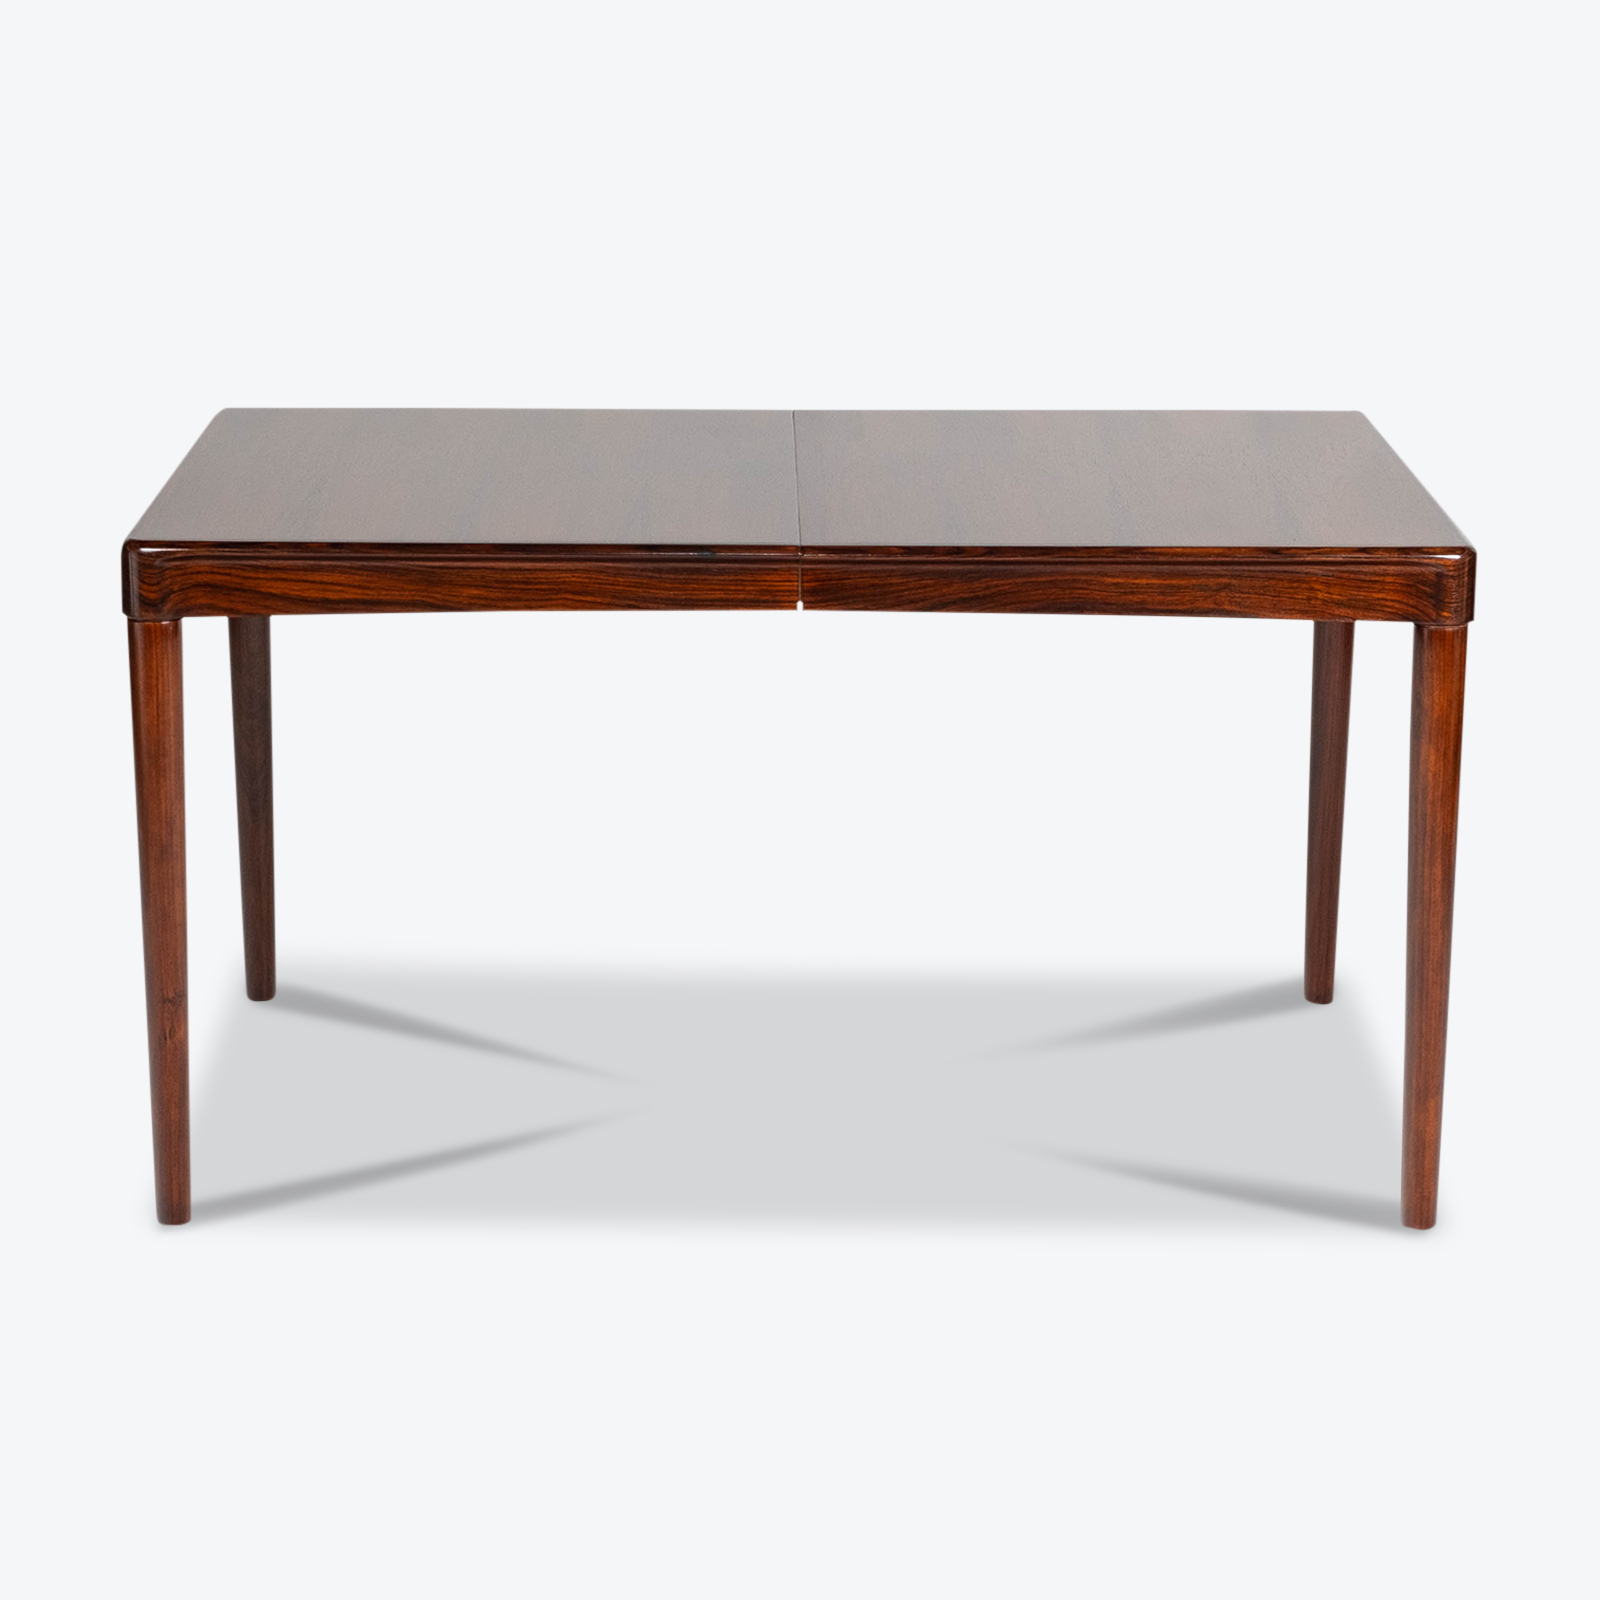 Extendable Dining Table By Hw Klein For Bramin In Rosewood, 1960s, Denmark Hero